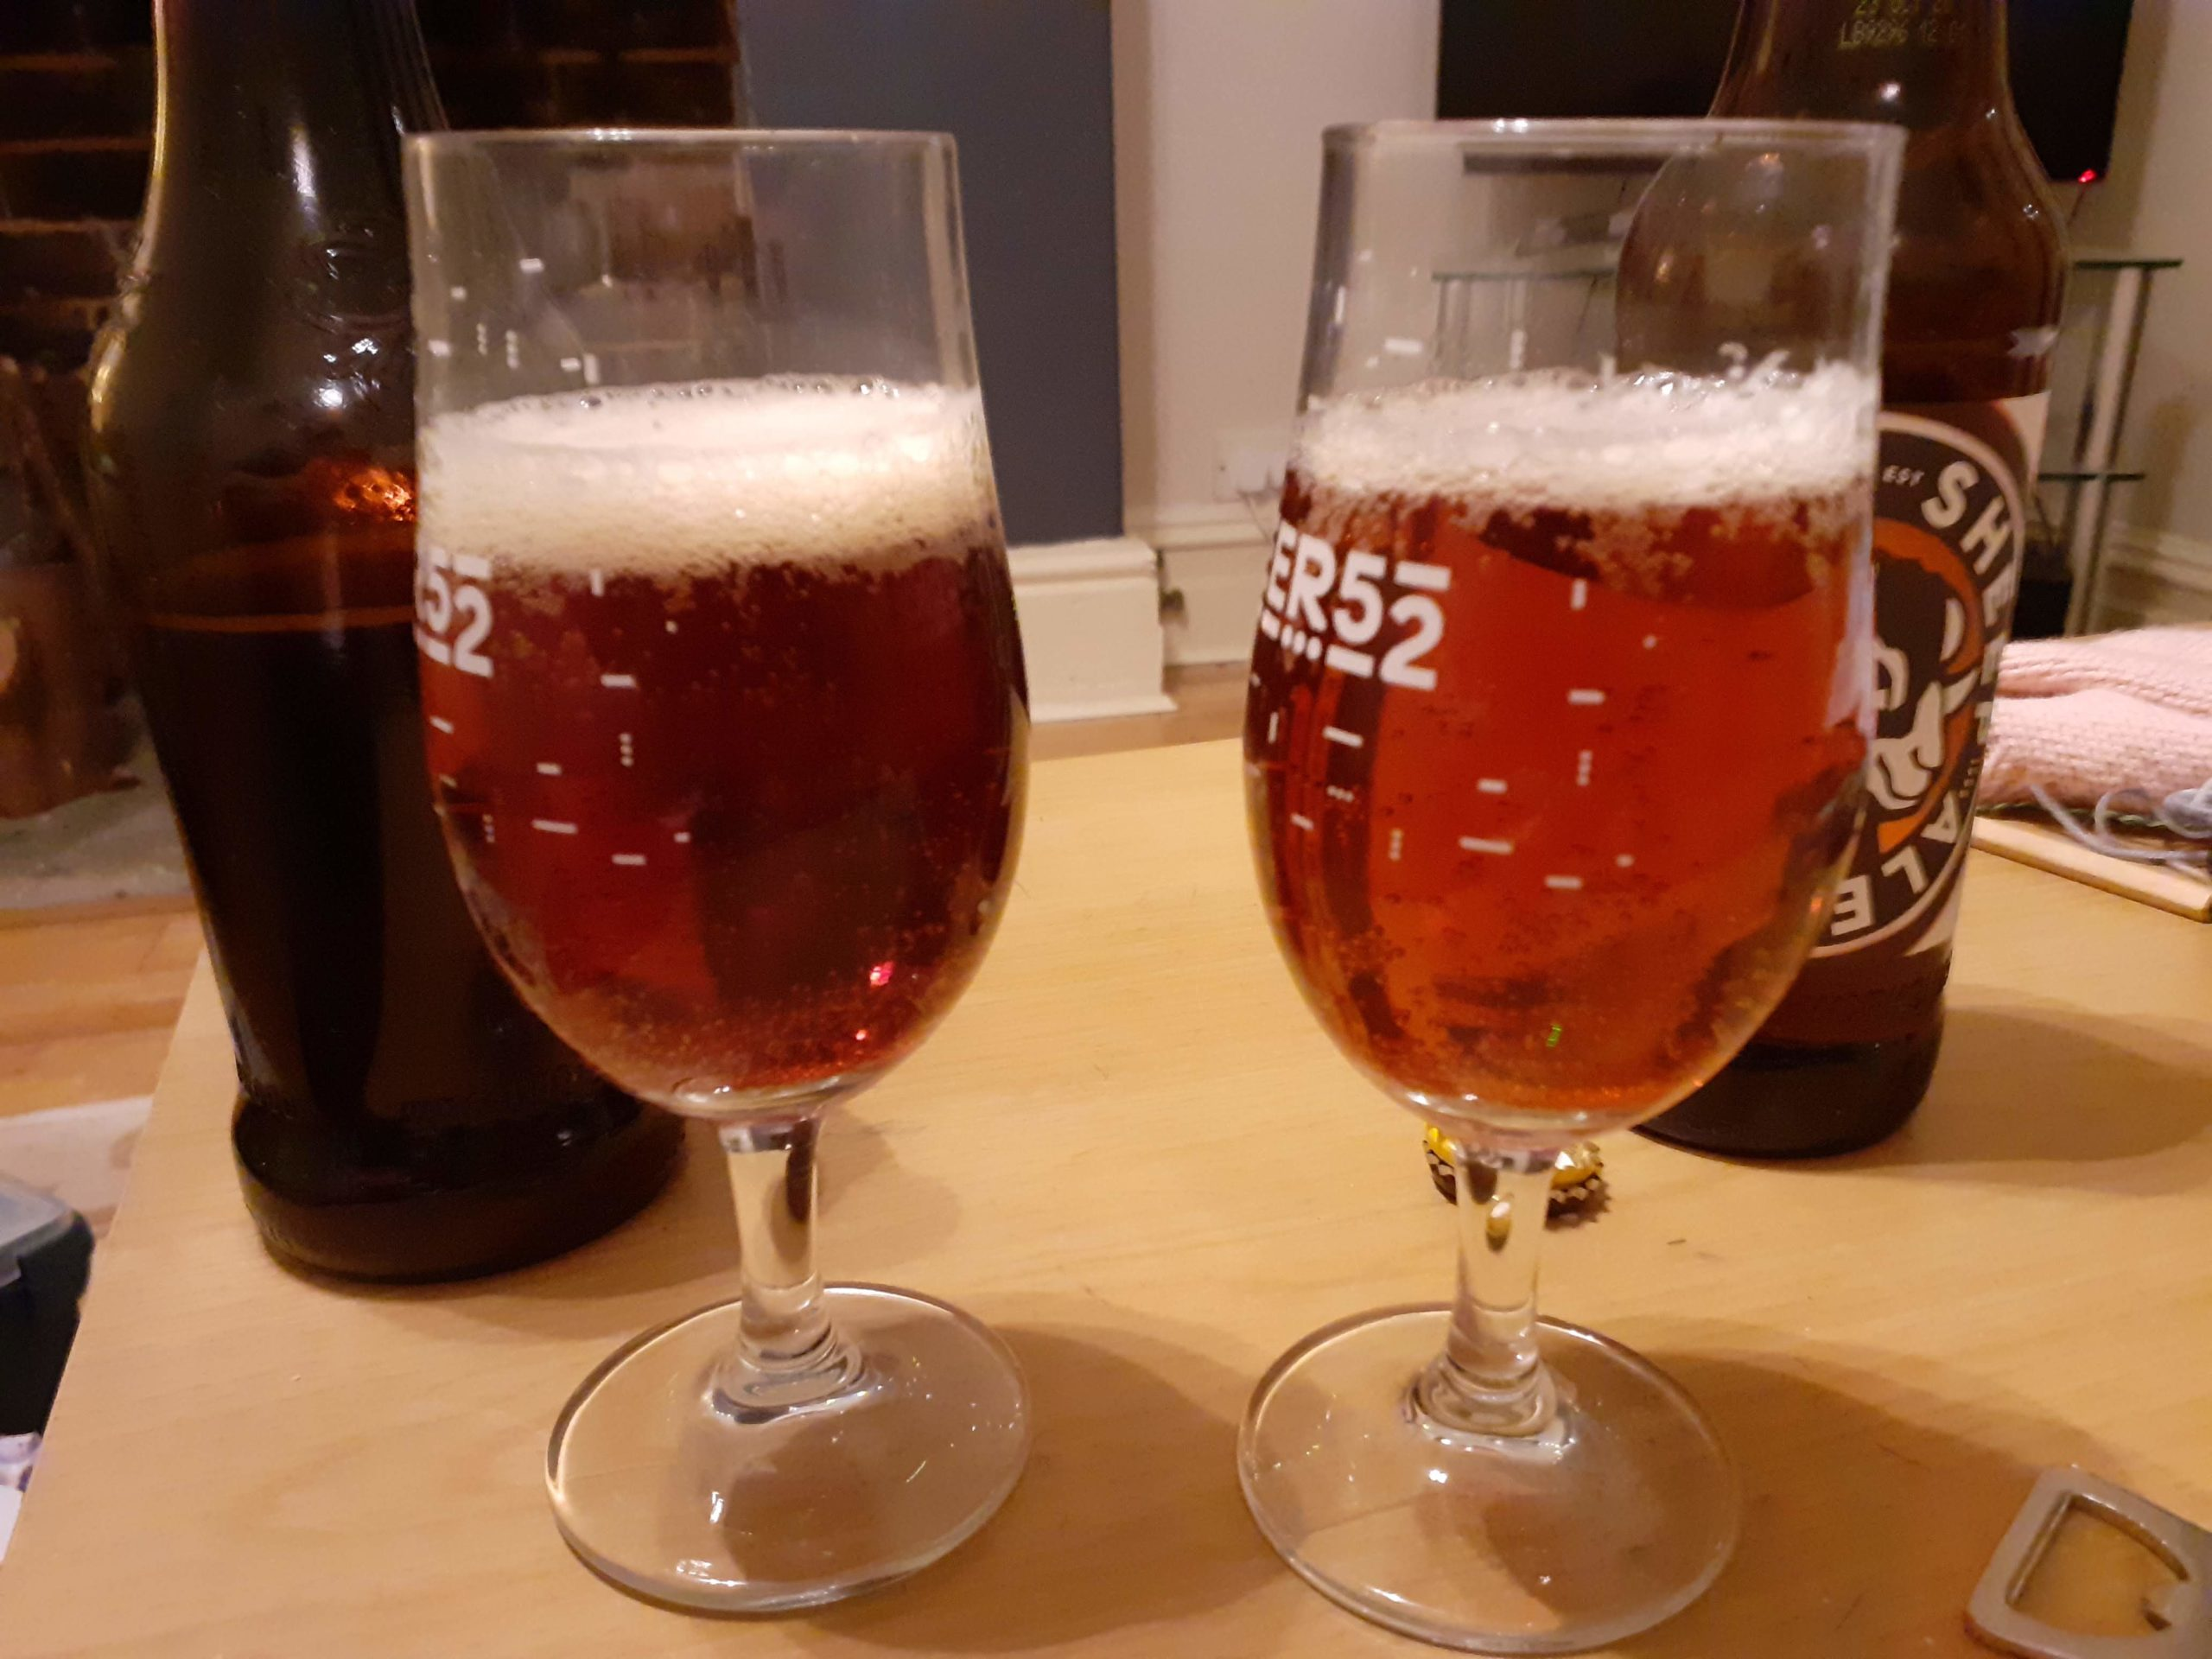 Comparing the colour of the beer